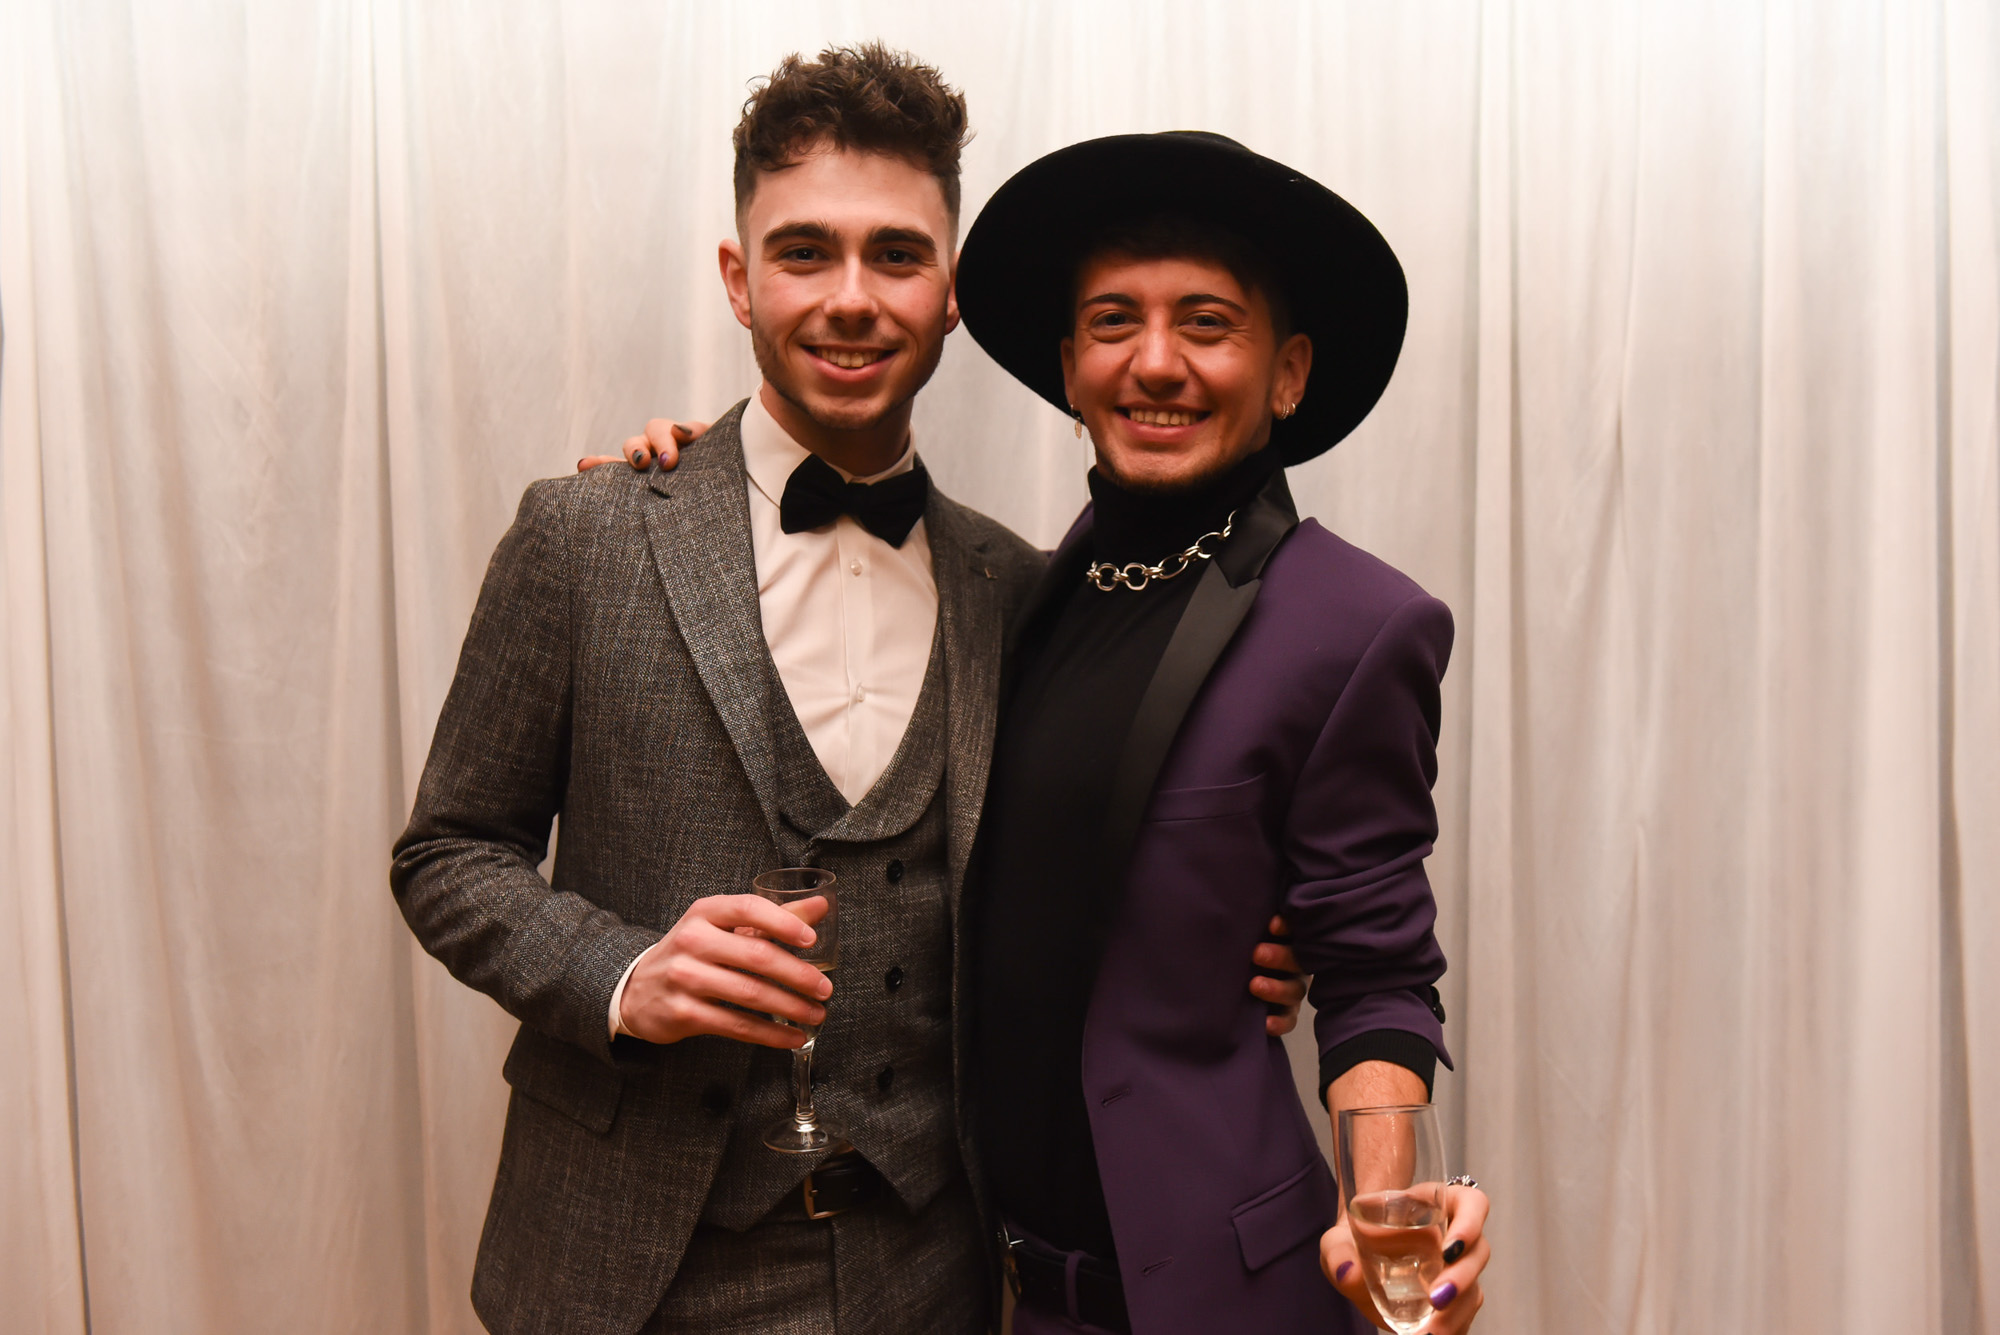 UCLAN_MT_BALL_2019_121.jpg